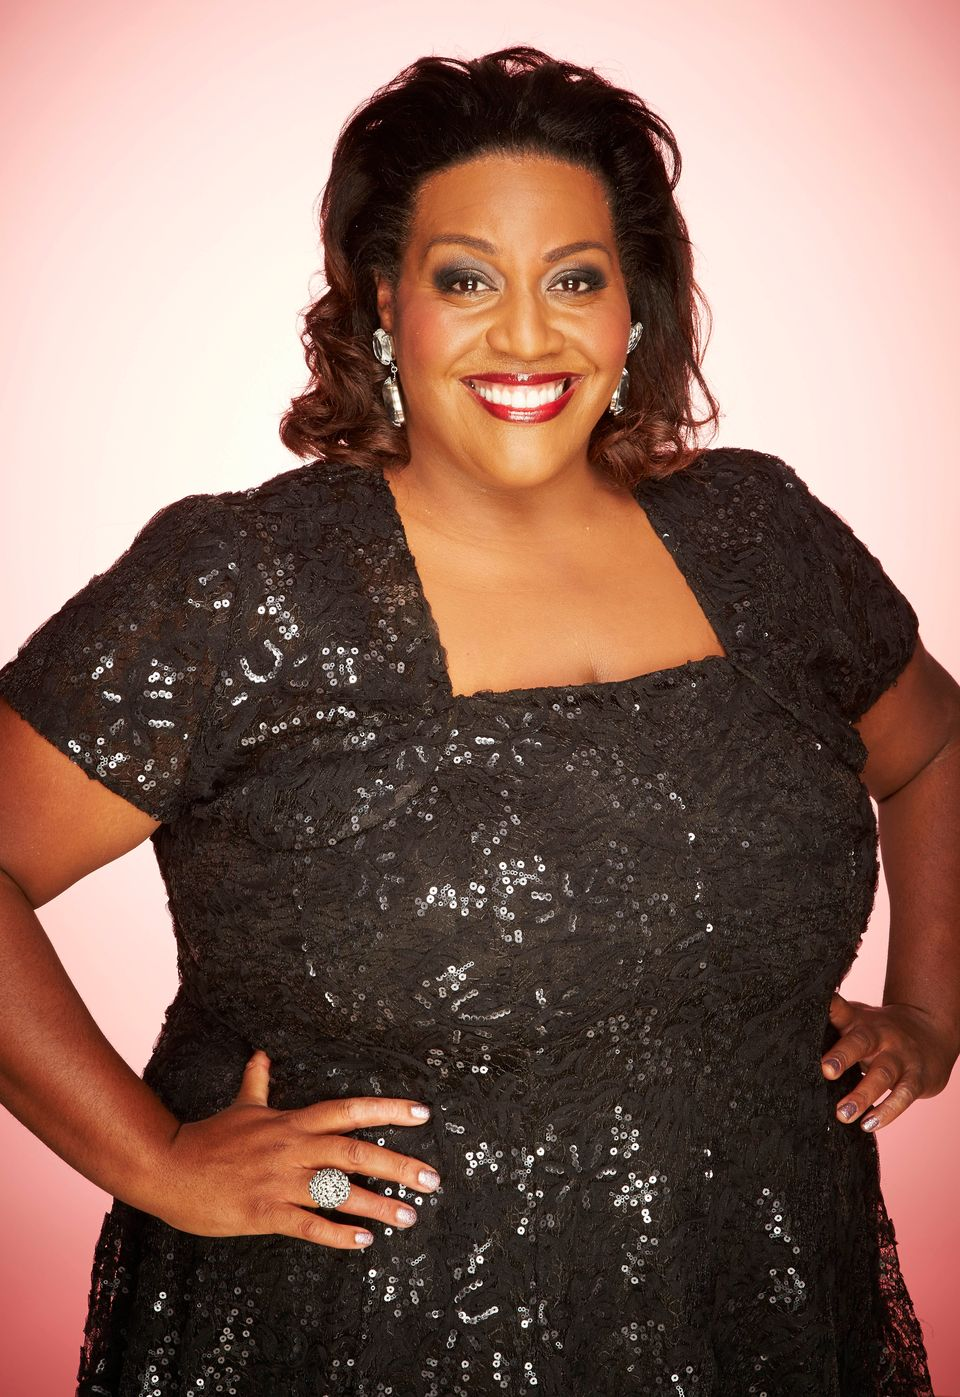 Alison Hammond has been part of the 'This Morning' family since